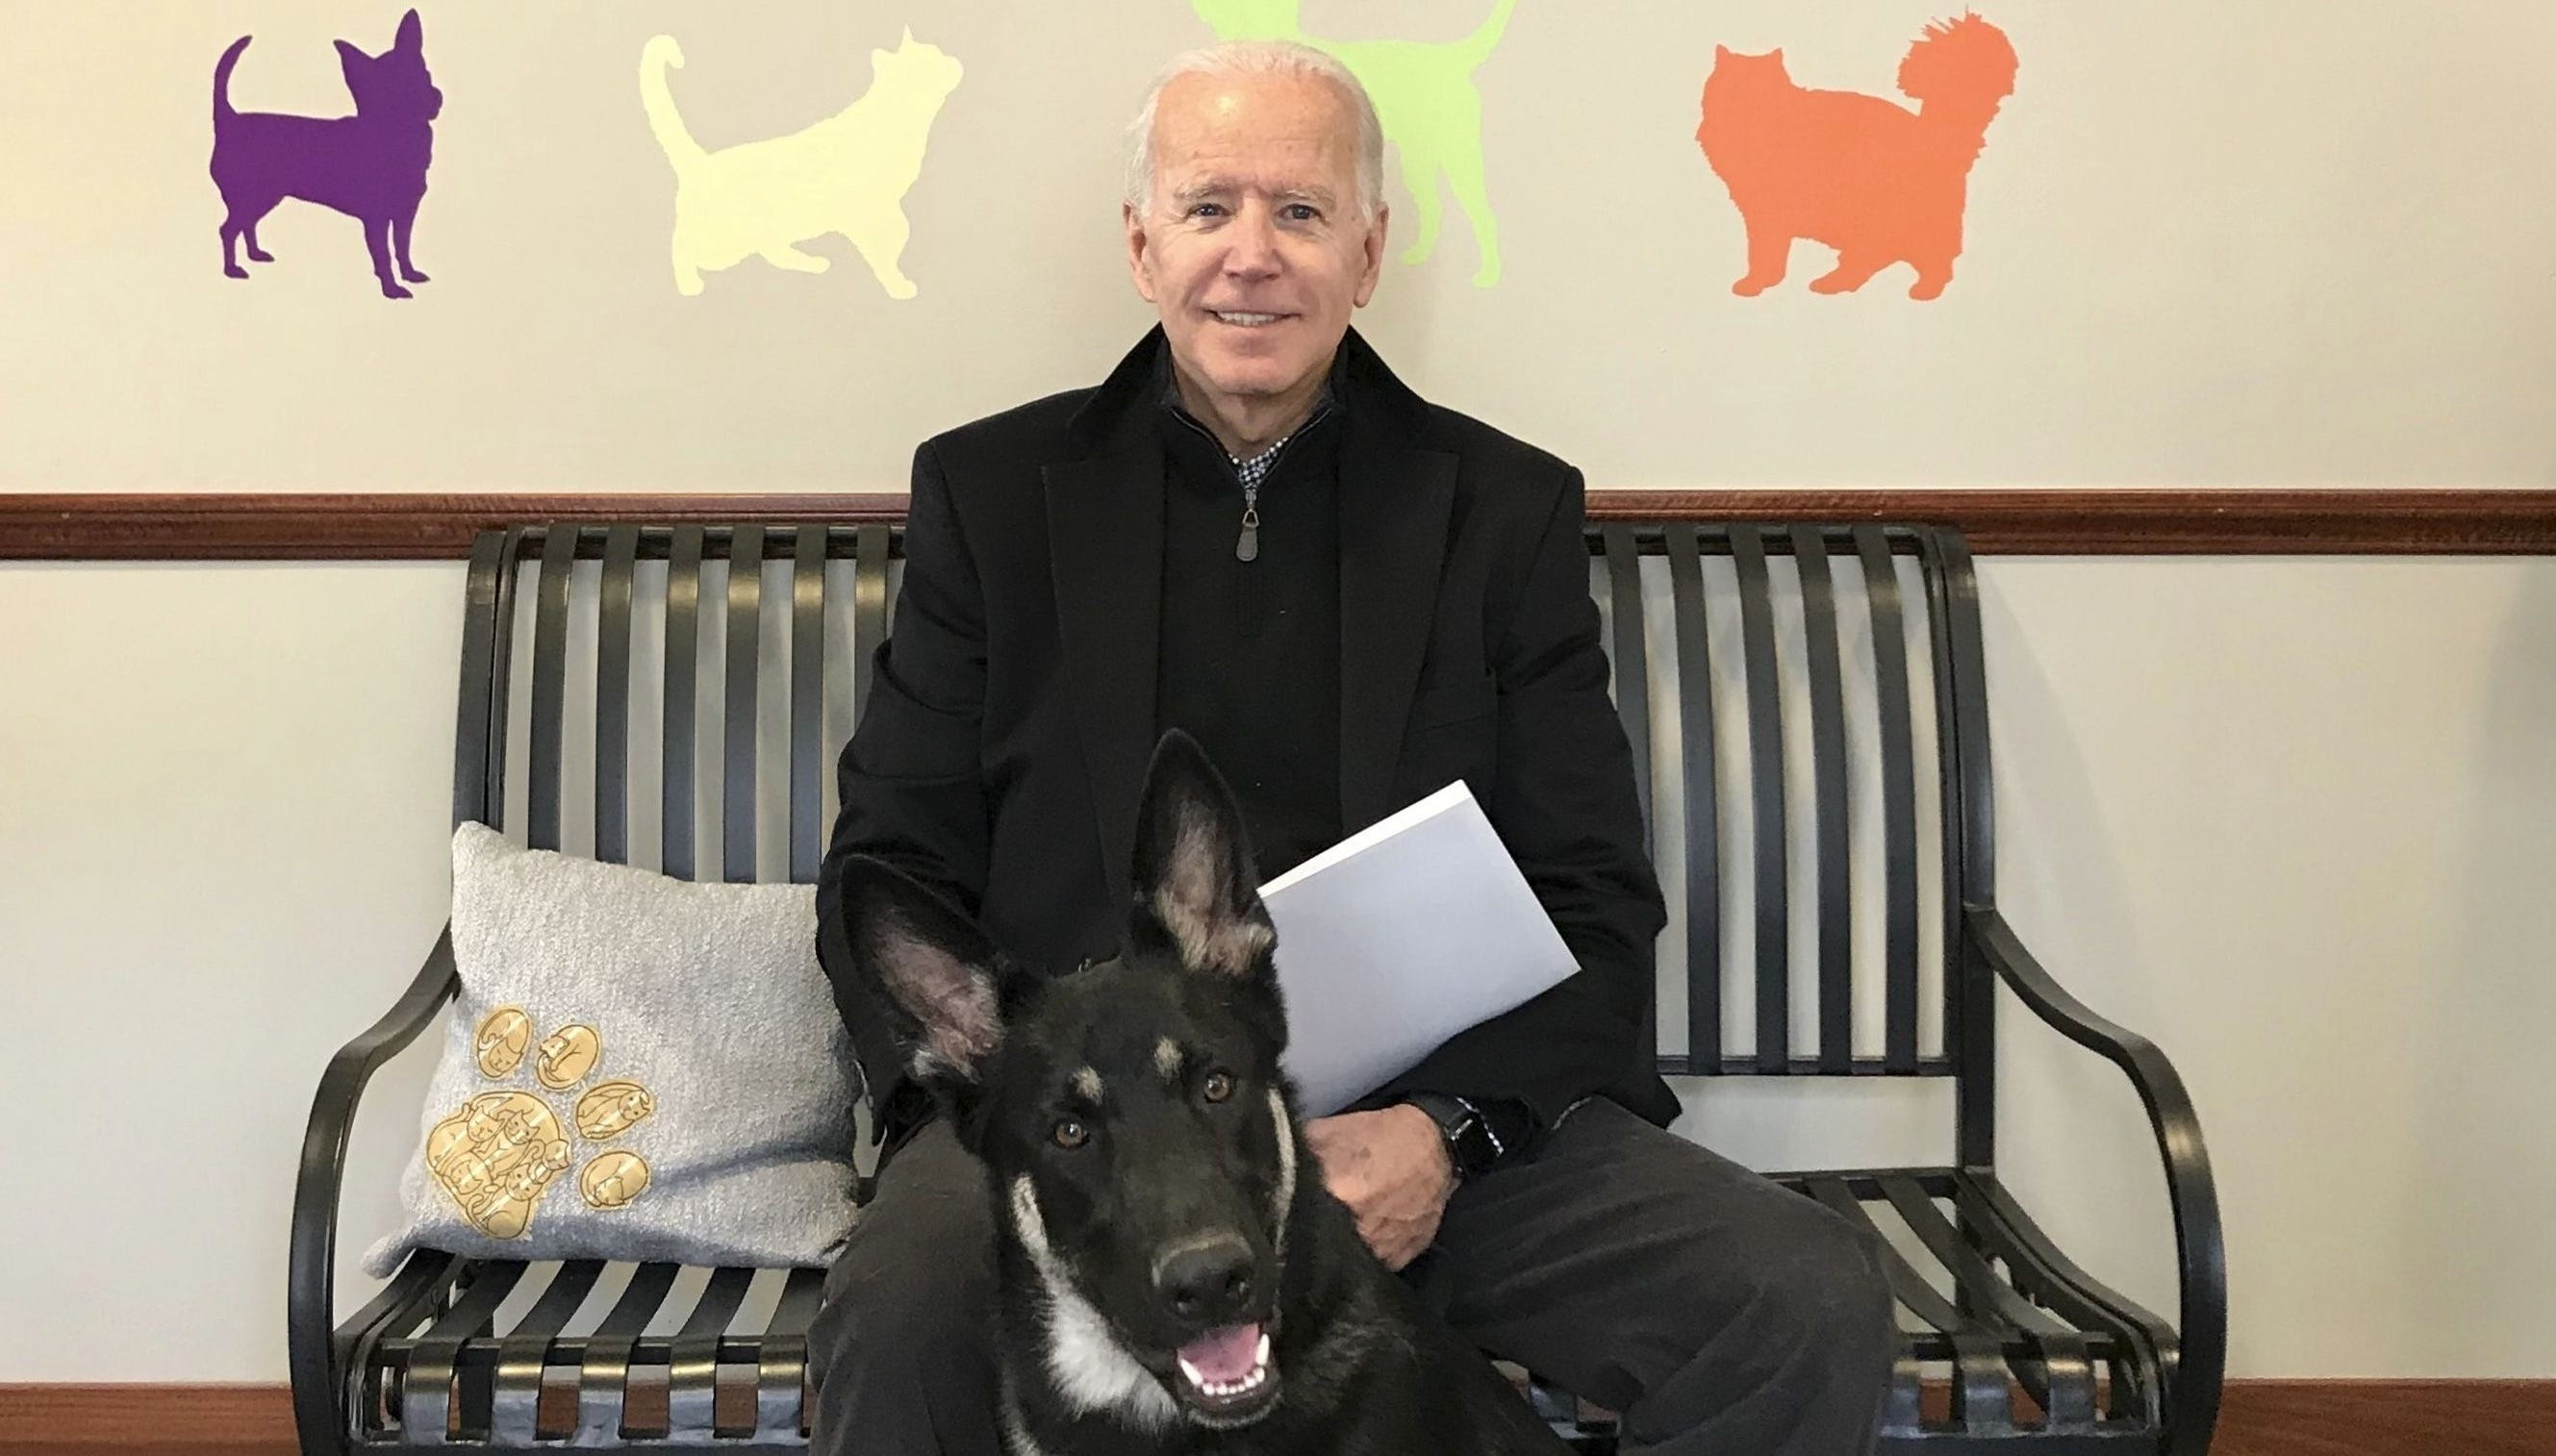 Meet Major! The rescue dog is the newest member of the Biden family